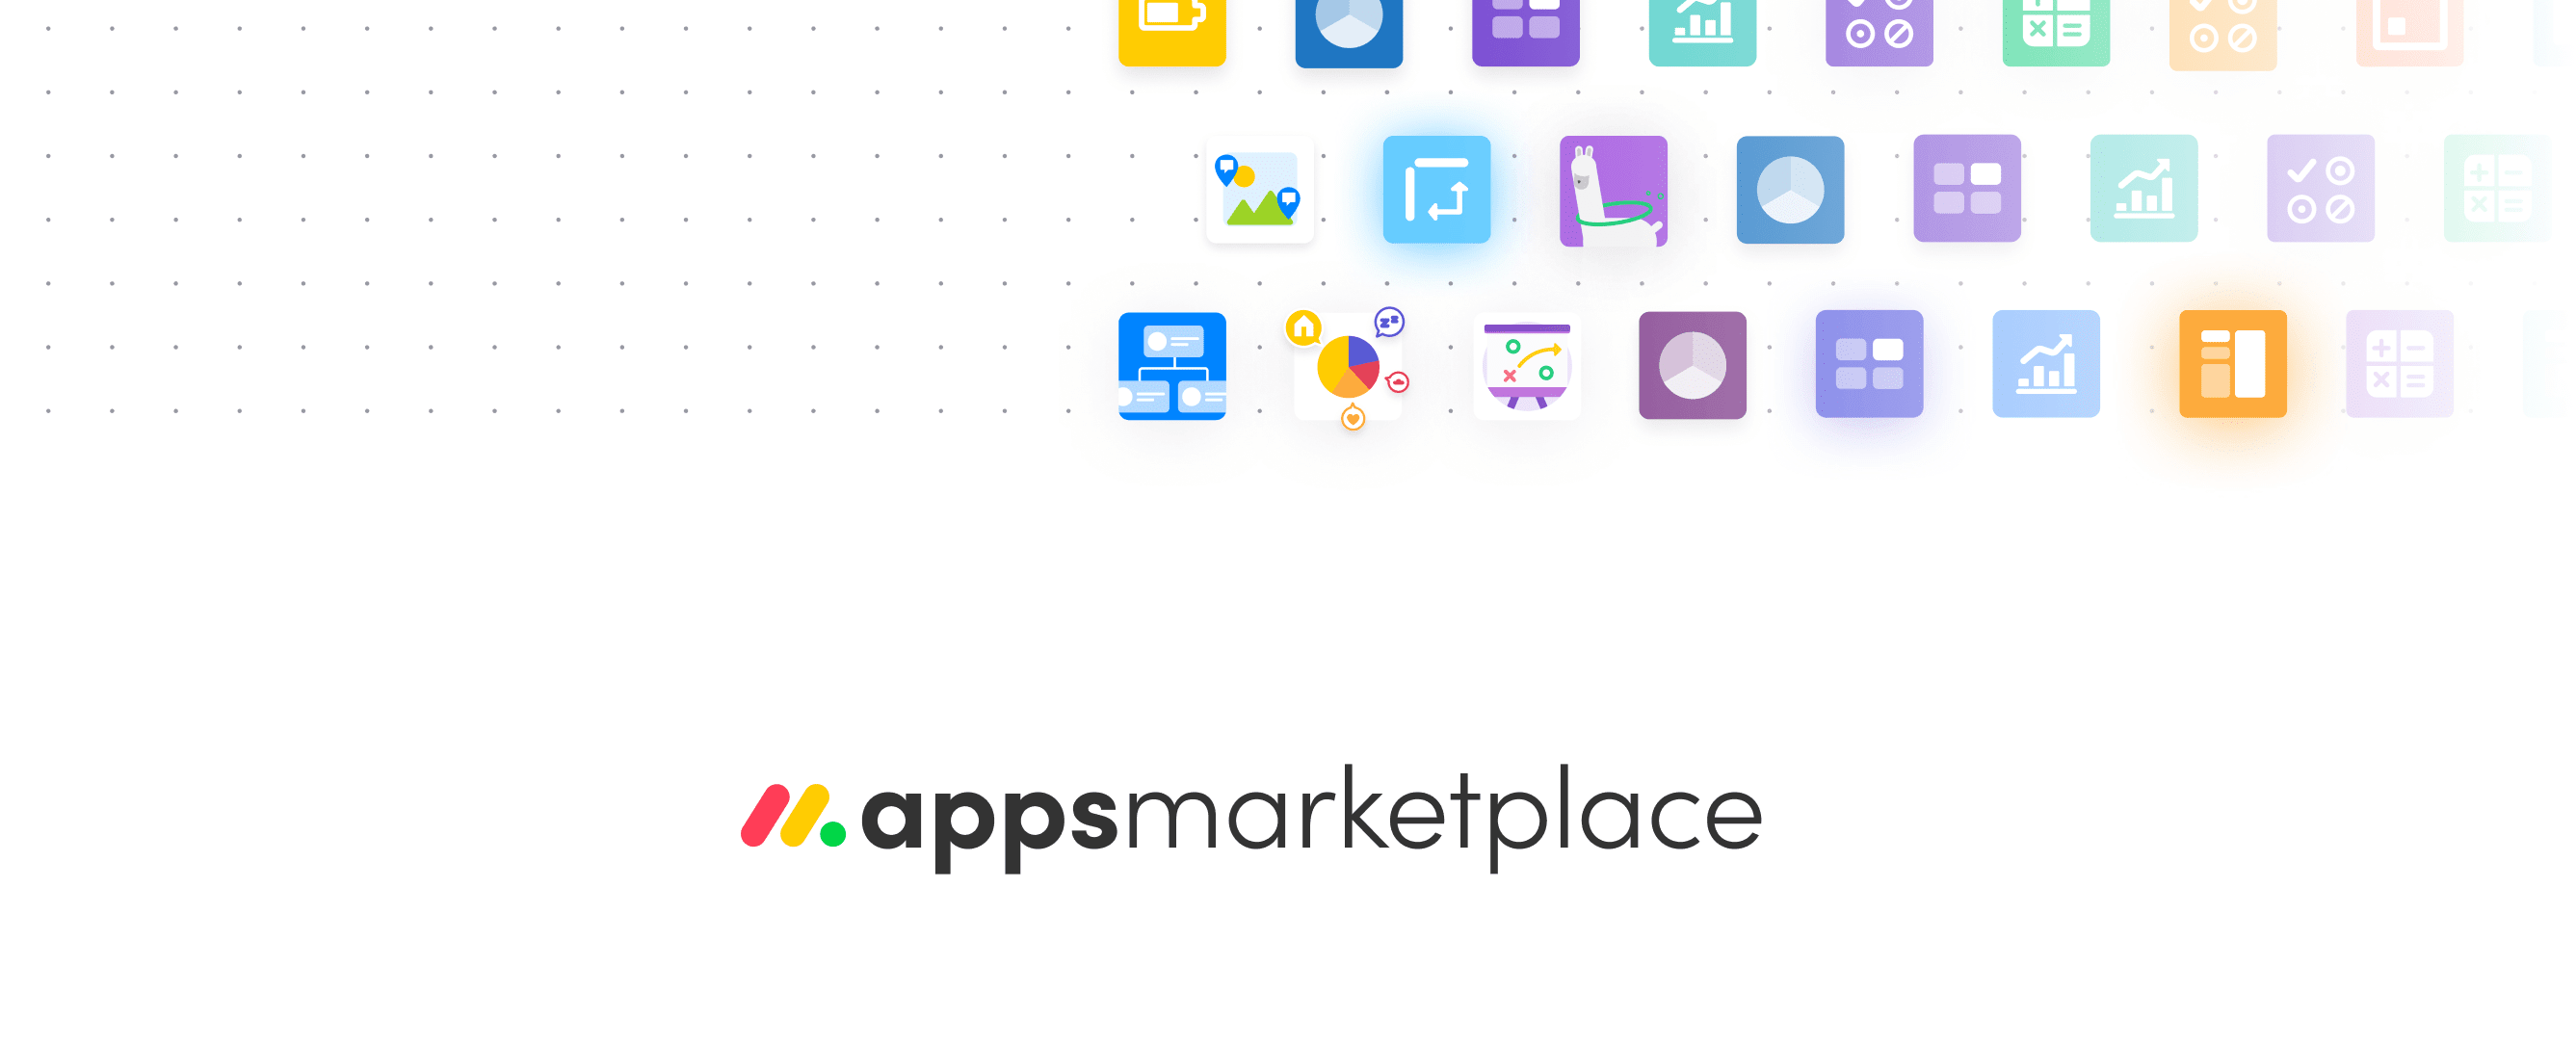 monday apps marketplace youtube video